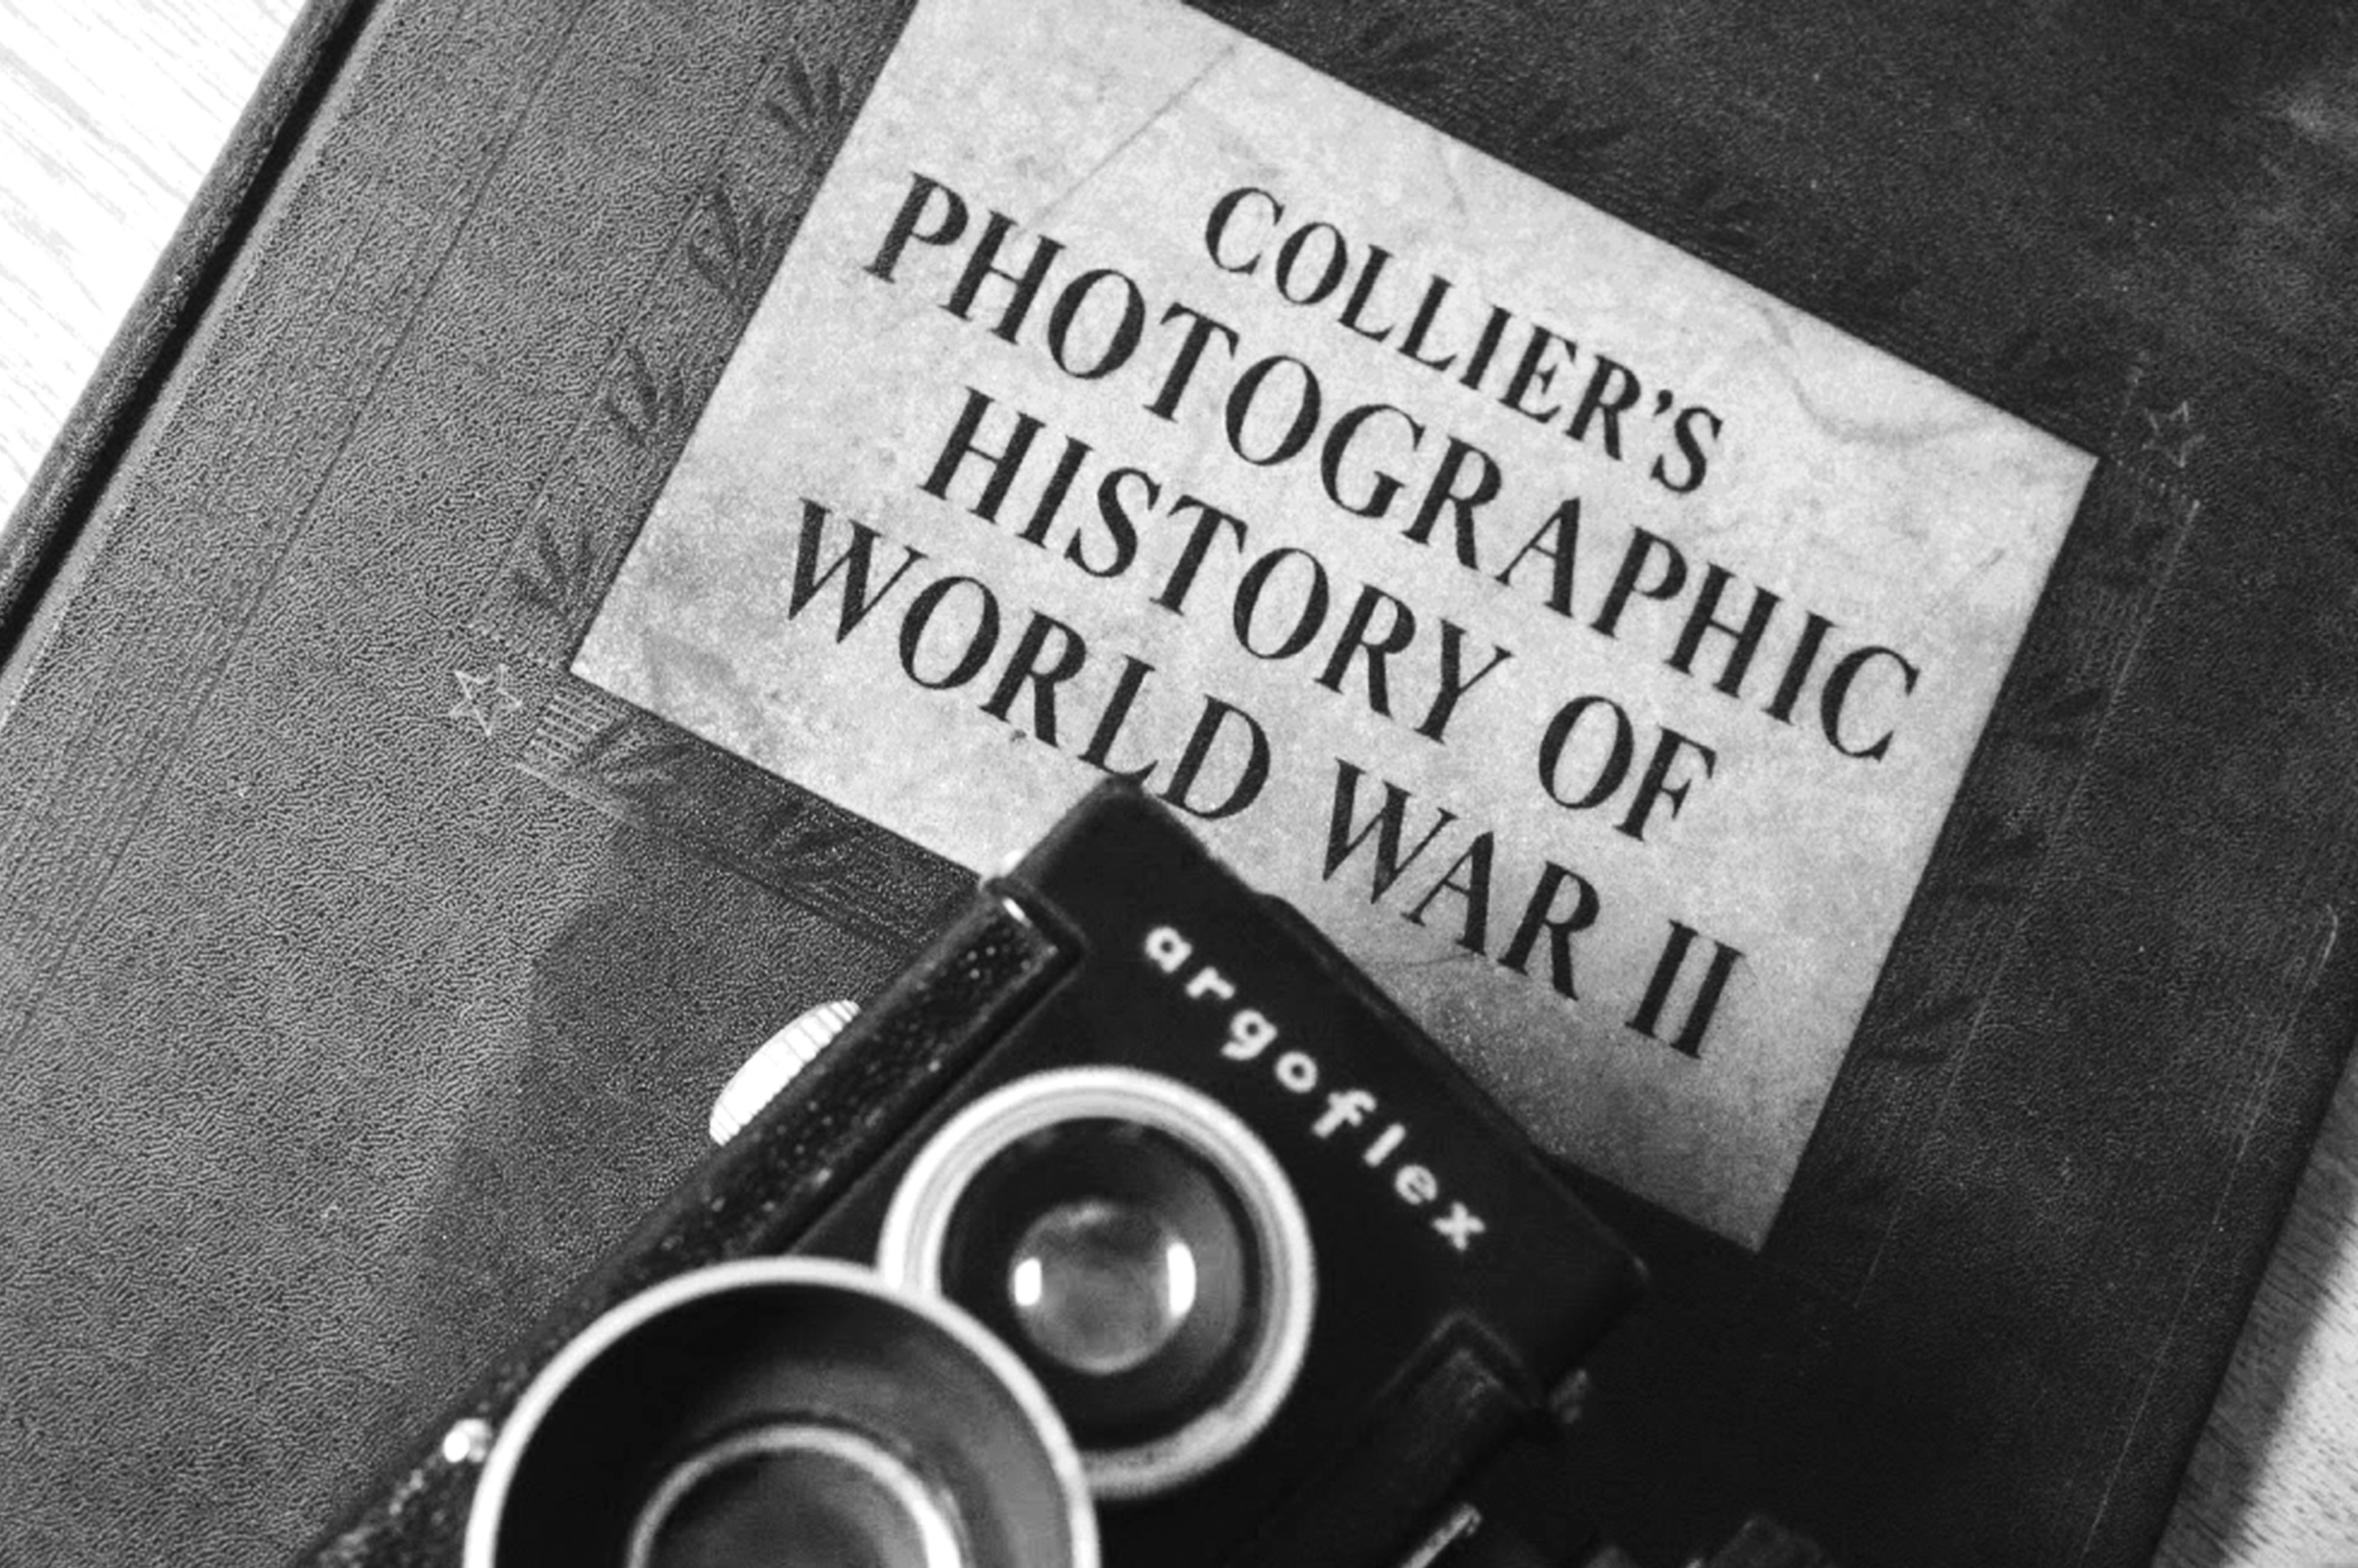 A photo of a camera and history book